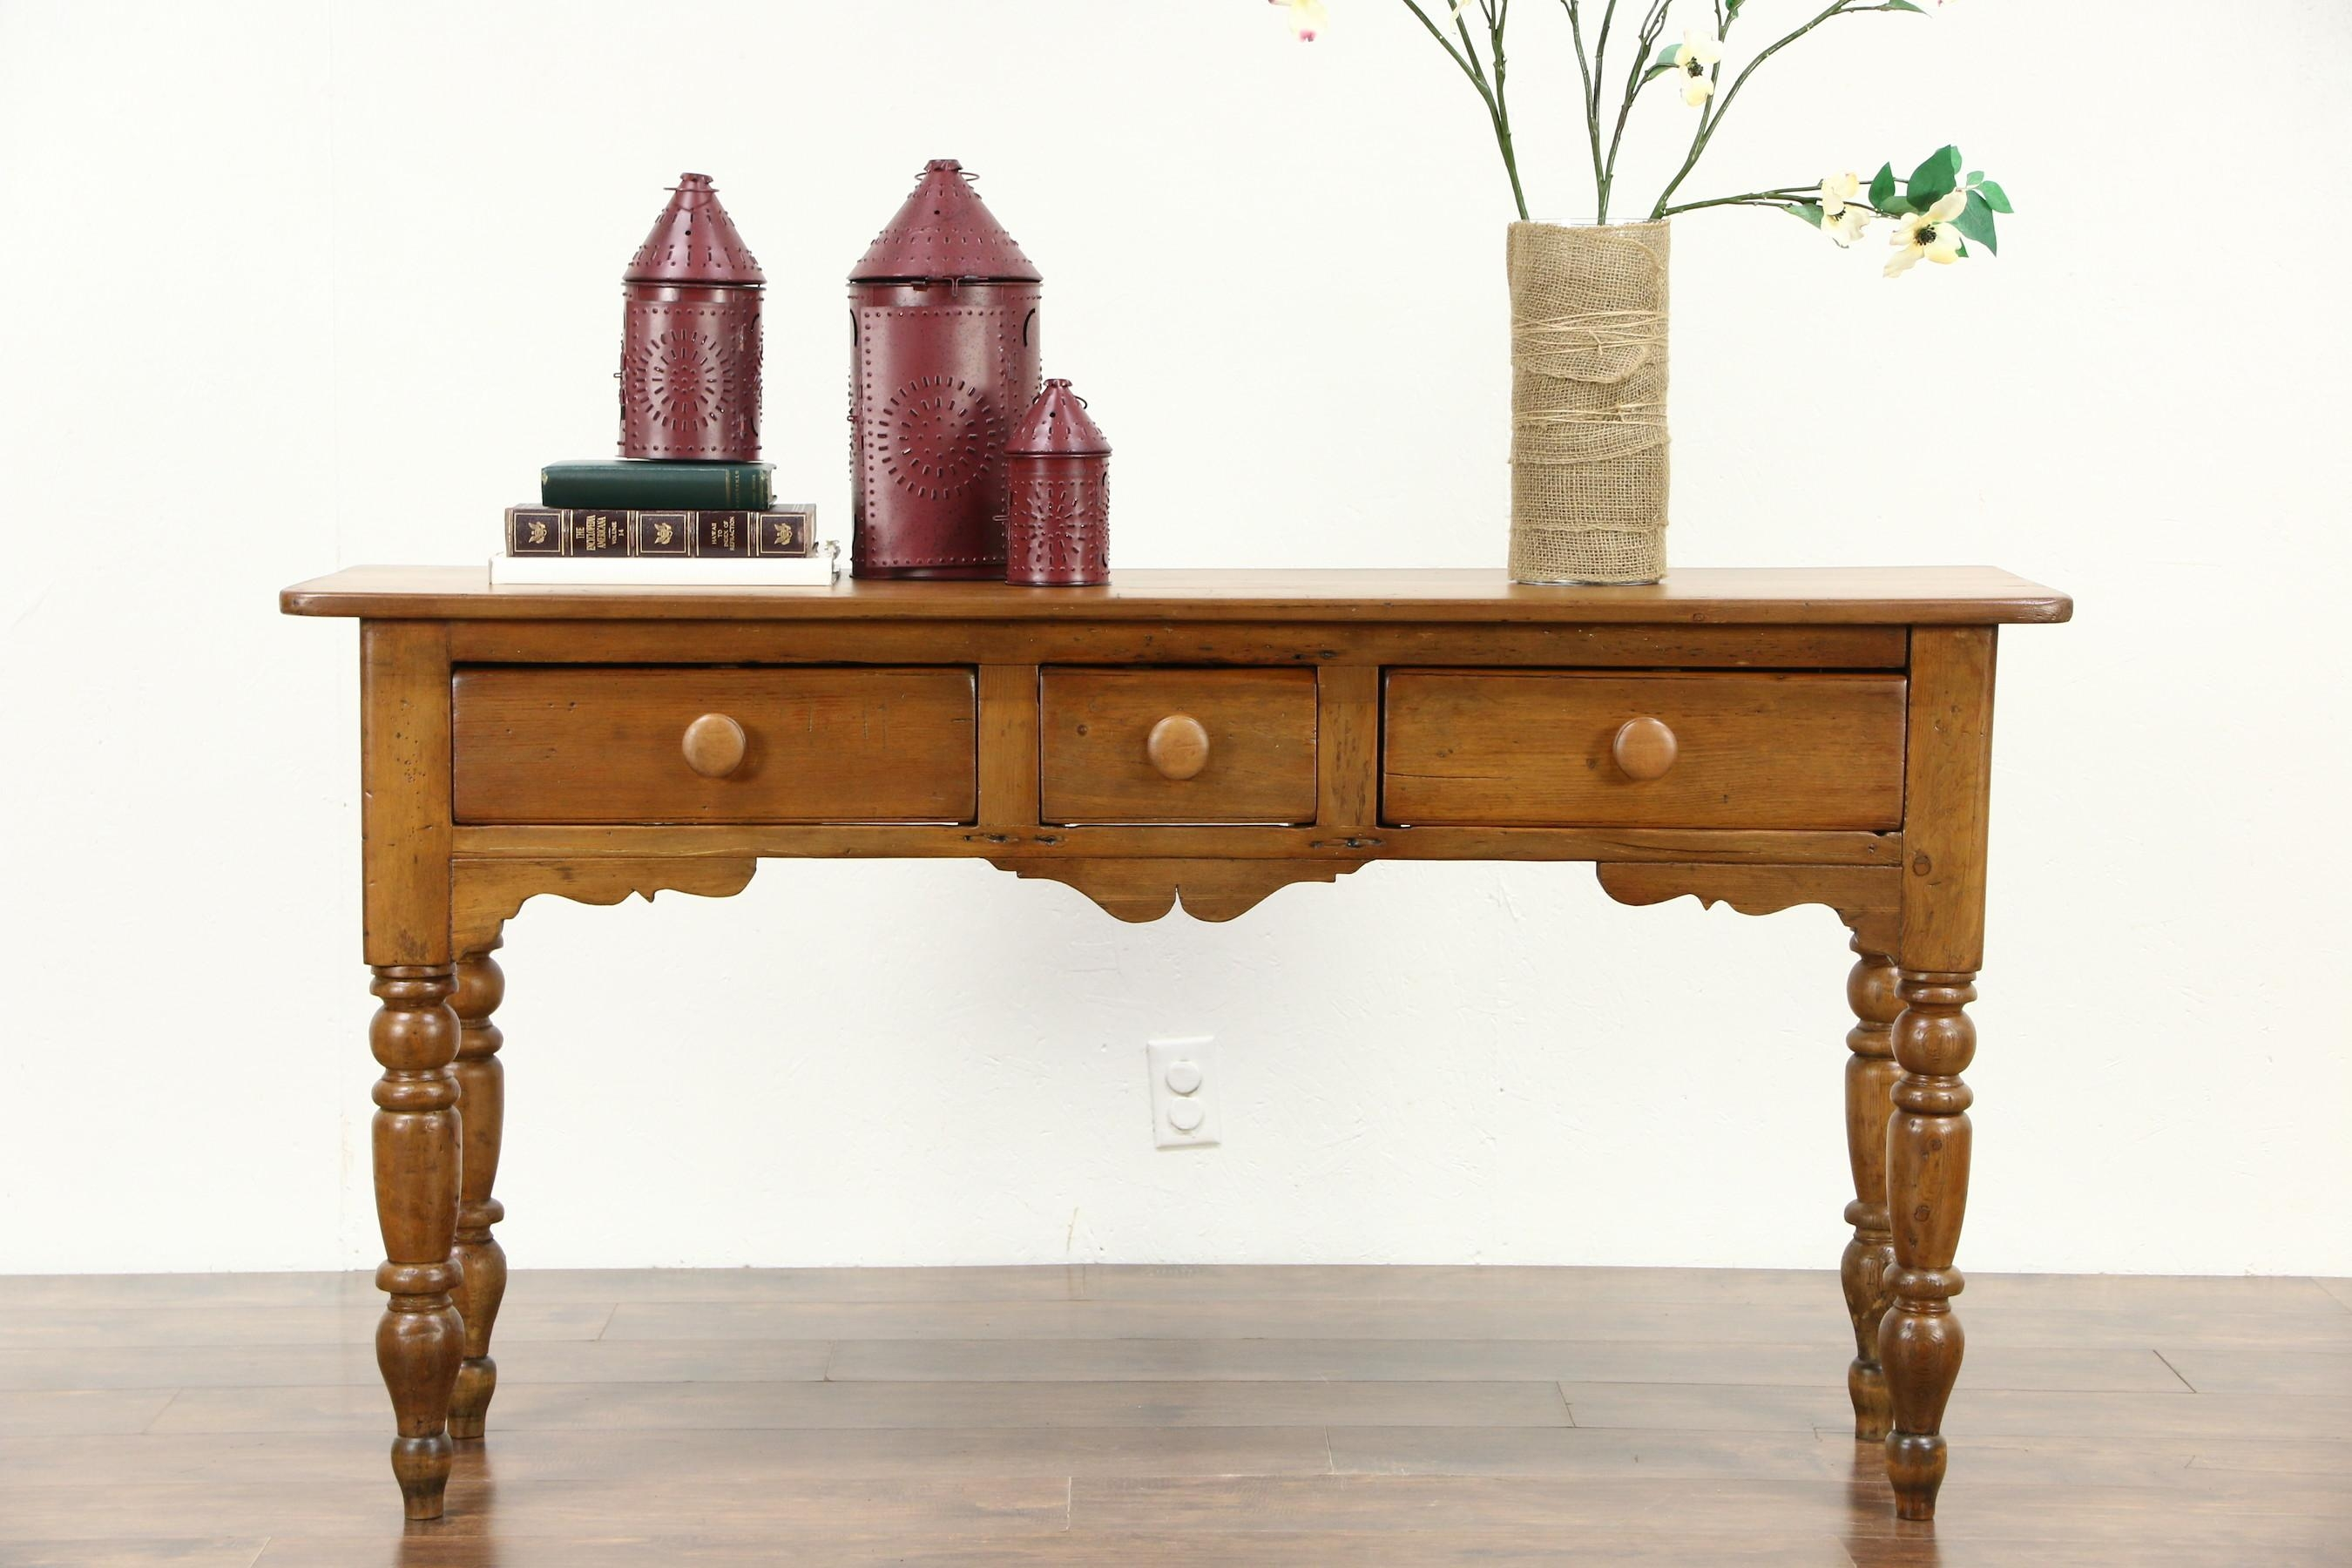 Country Pine 1860's Antique English Sofa Table Or Hall Console With Country Sofa Tables (Image 7 of 20)